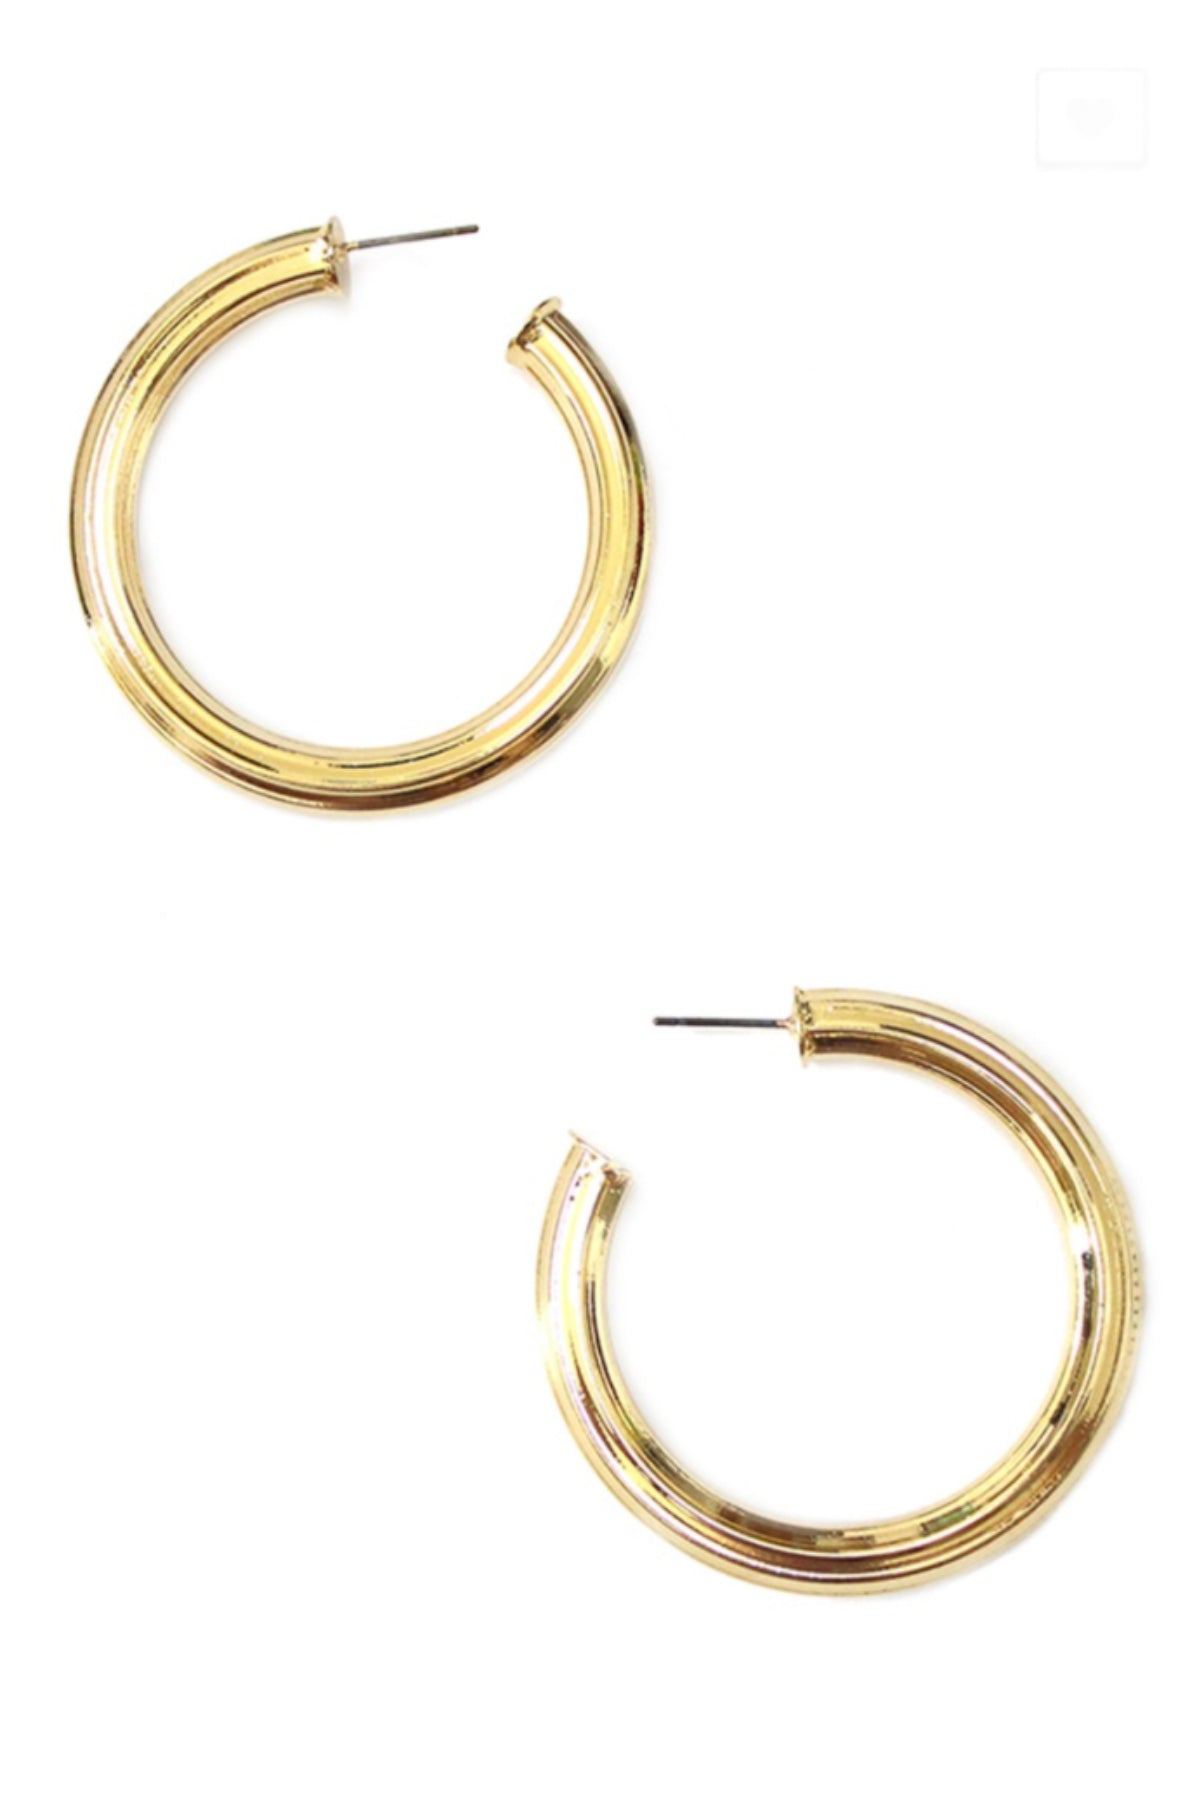 TEXTURED BRASS TUBE HOOP EARRINGS